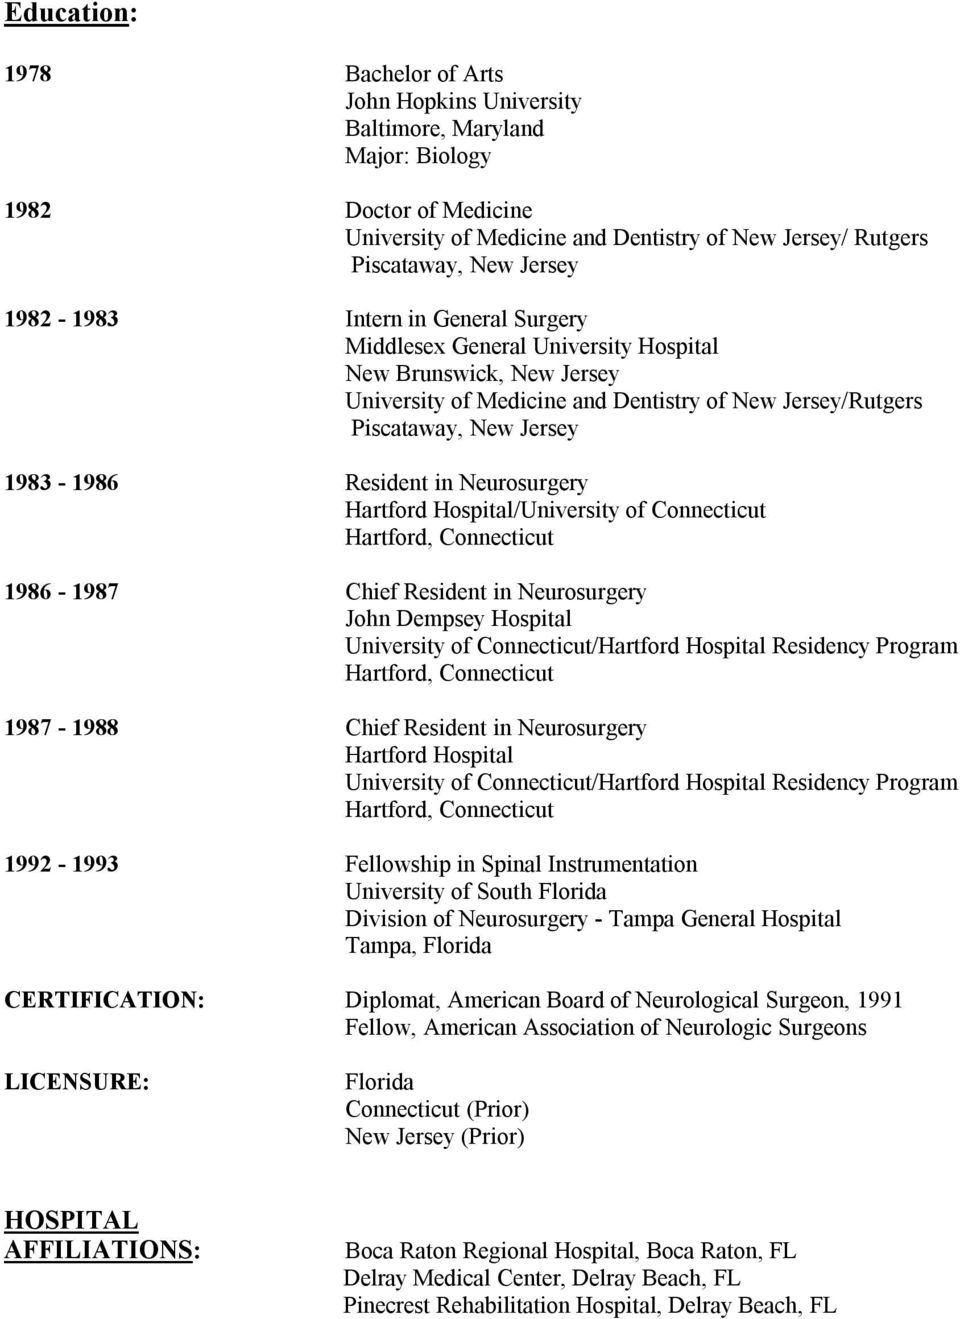 Resident in Neurosurgery /University of Connecticut Hartford, Connecticut 1986-1987 Chief Resident in Neurosurgery John Dempsey Hospital University of Connecticut/ Residency Program Hartford,